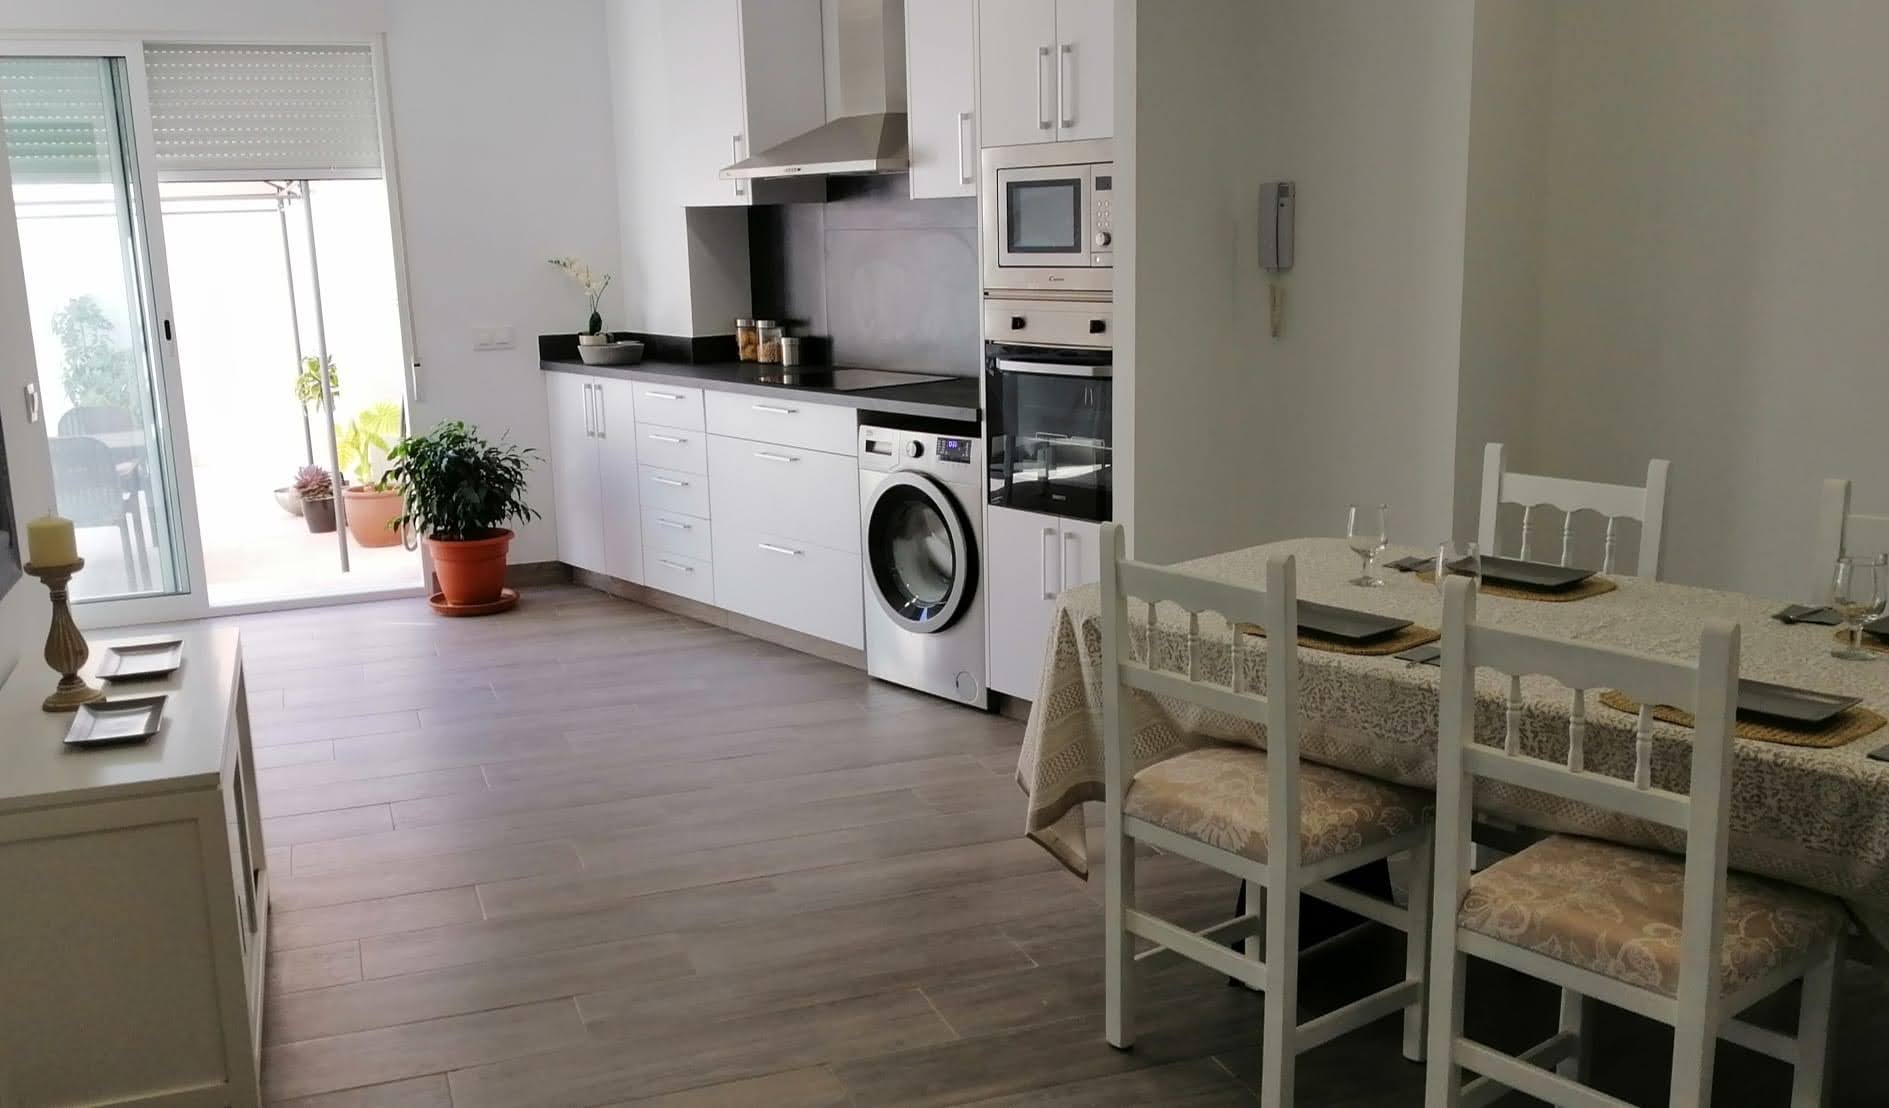 Student rooms in shared apartment for rent in Moncada – Ref. 001220